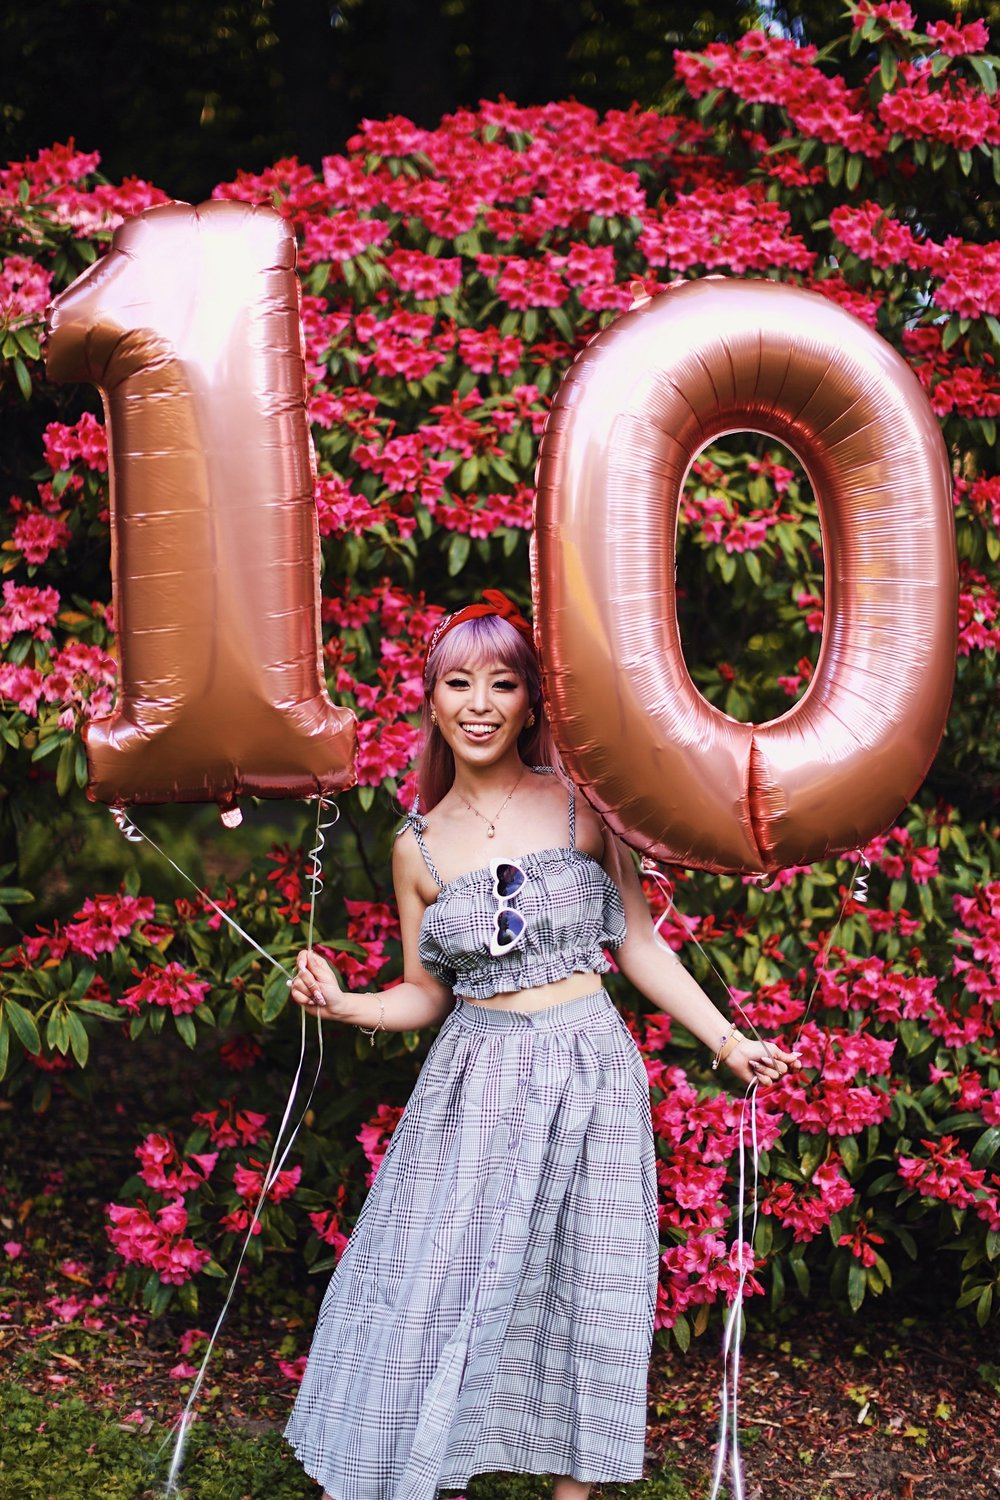 Aika's Love Closet-Seattle Style Life Style Blogger-Japanese-10 Year Anniversary-living in America-what I've learned from Living Abroad-life lessons-pink hair-zero uv heart sunglasses-rose gold balloons-smile